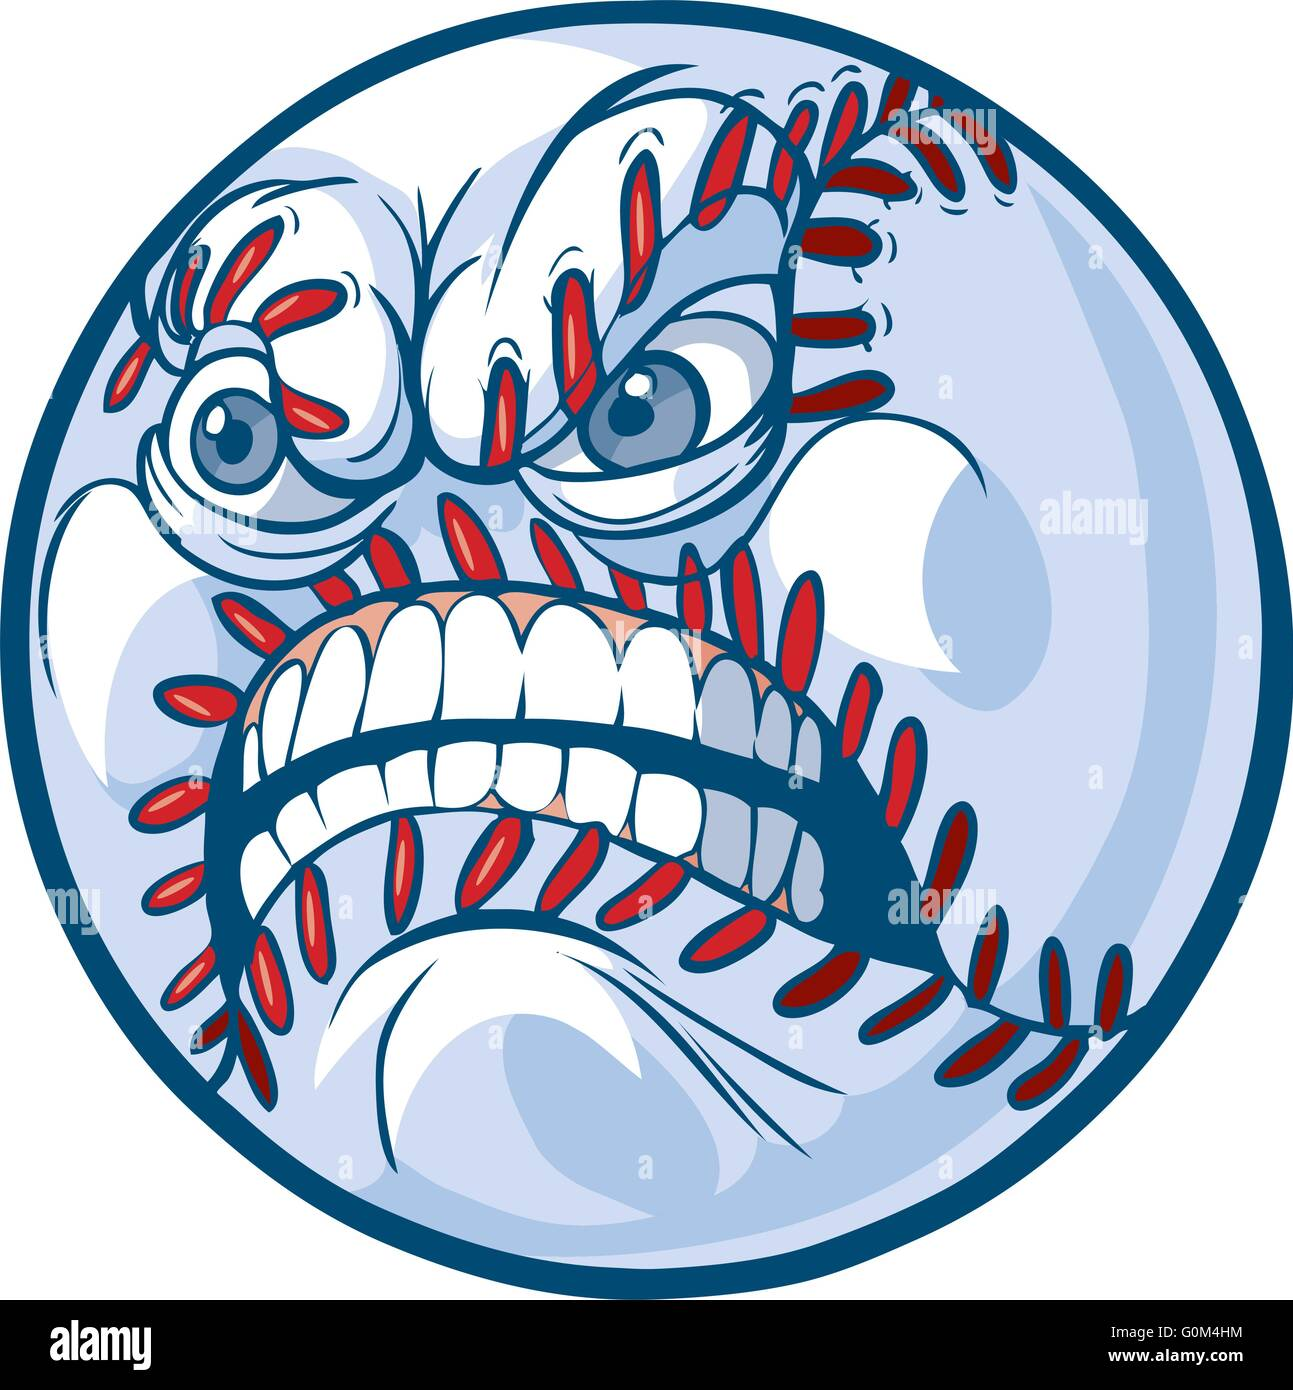 vector cartoon clip art illustration of a baseball or softball with rh alamy com softball player vector art softball player vector art